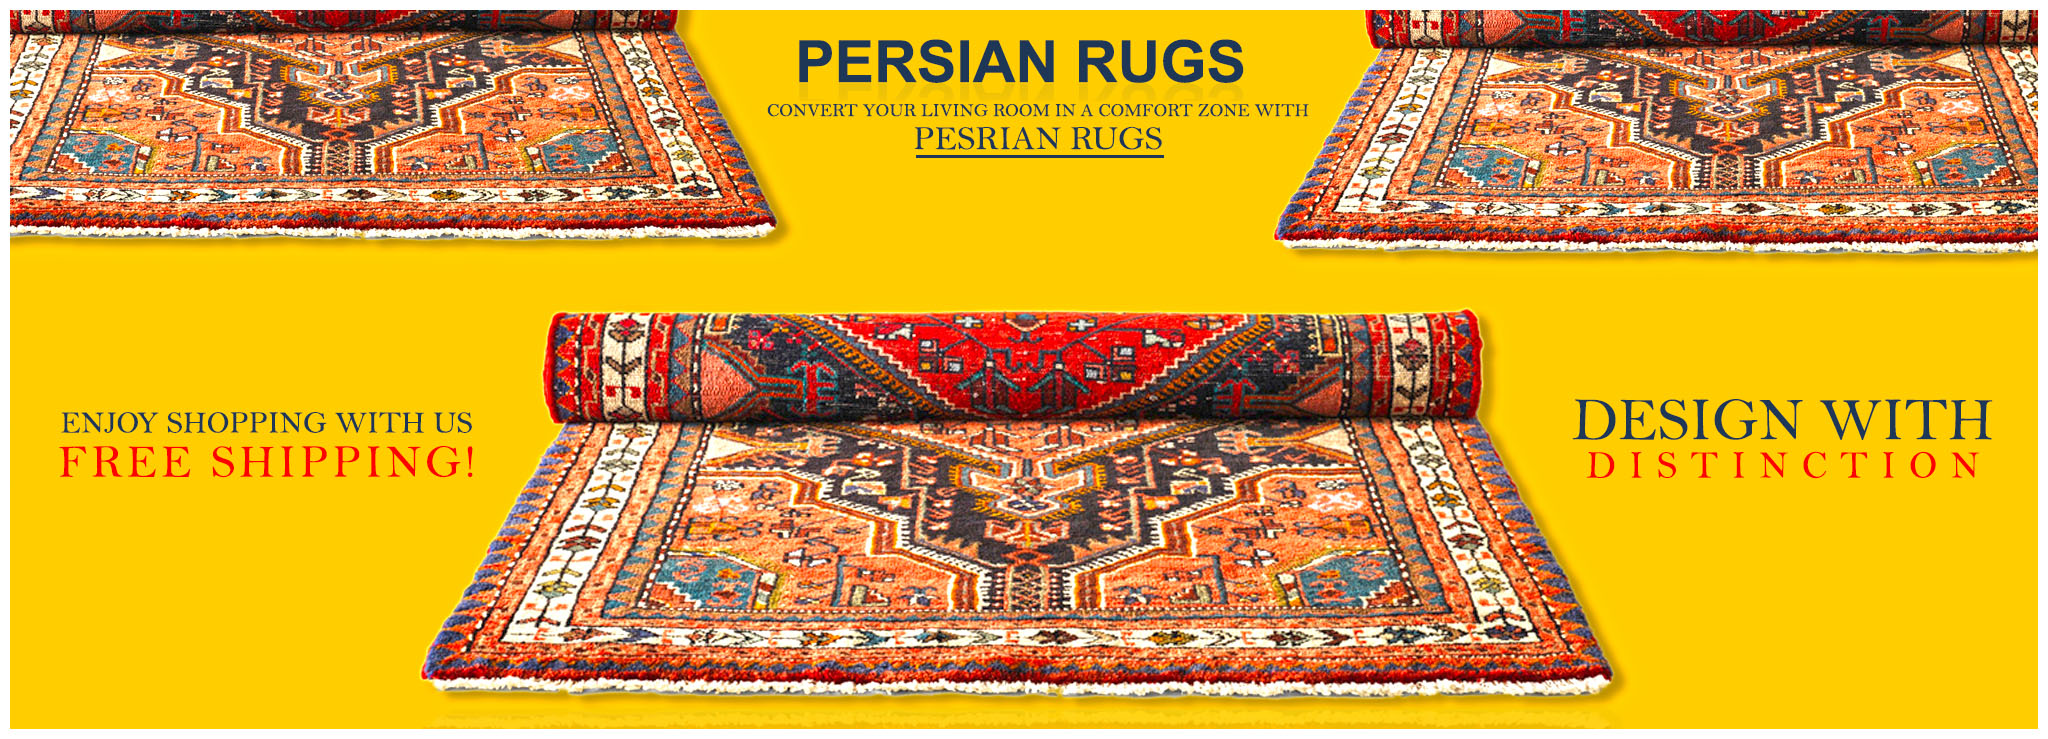 Persian Rugs Most Designer A Million Oz